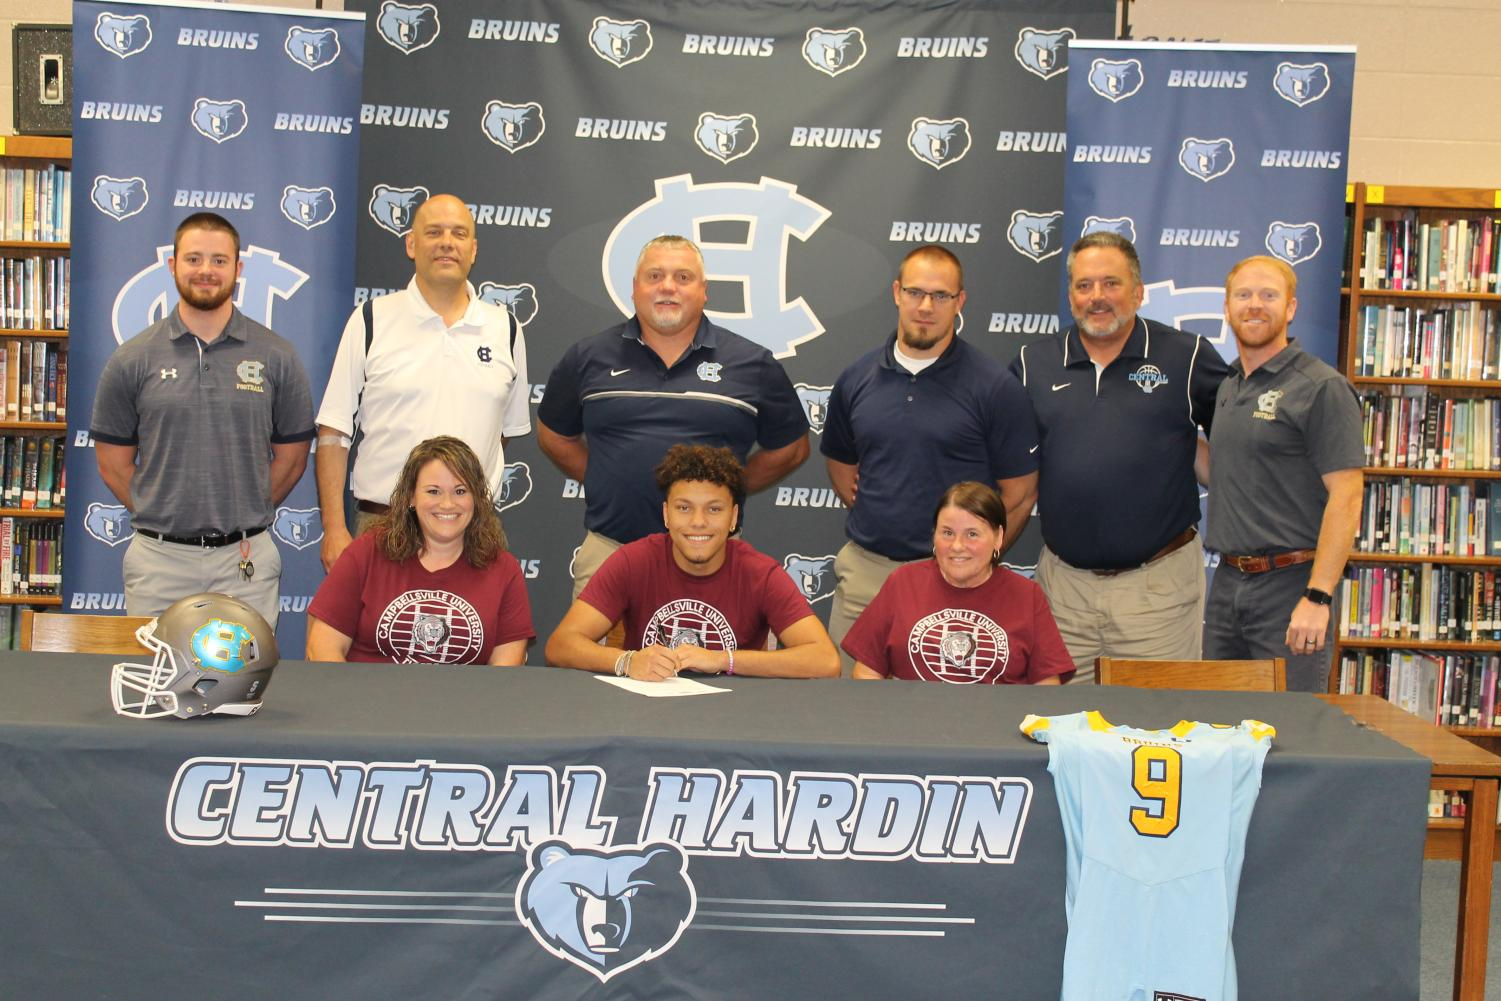 Taylon+Farris+signed+with+the+football+program+at+Campbellsville+University%2C+surrounded+by+family+and+coaches%2C+on+May+23.